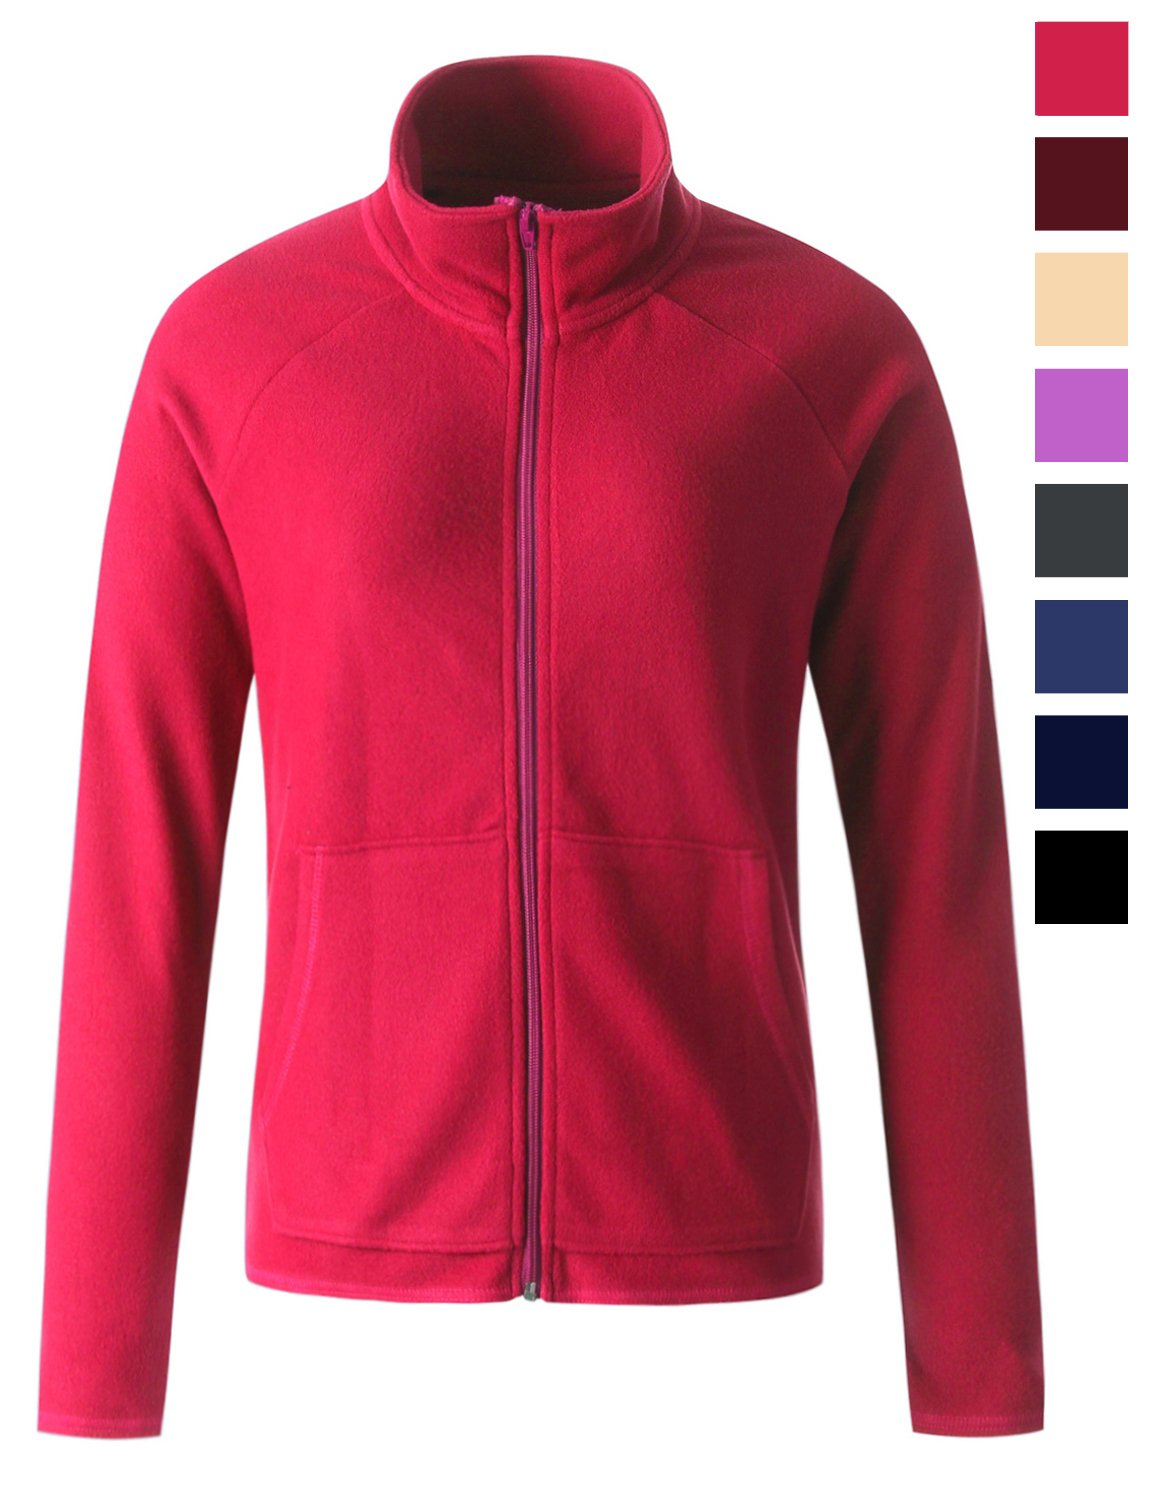 Regna X Women Petite XS Slim fit Fitted Full Zip up Fleece Jacket Pink S Small